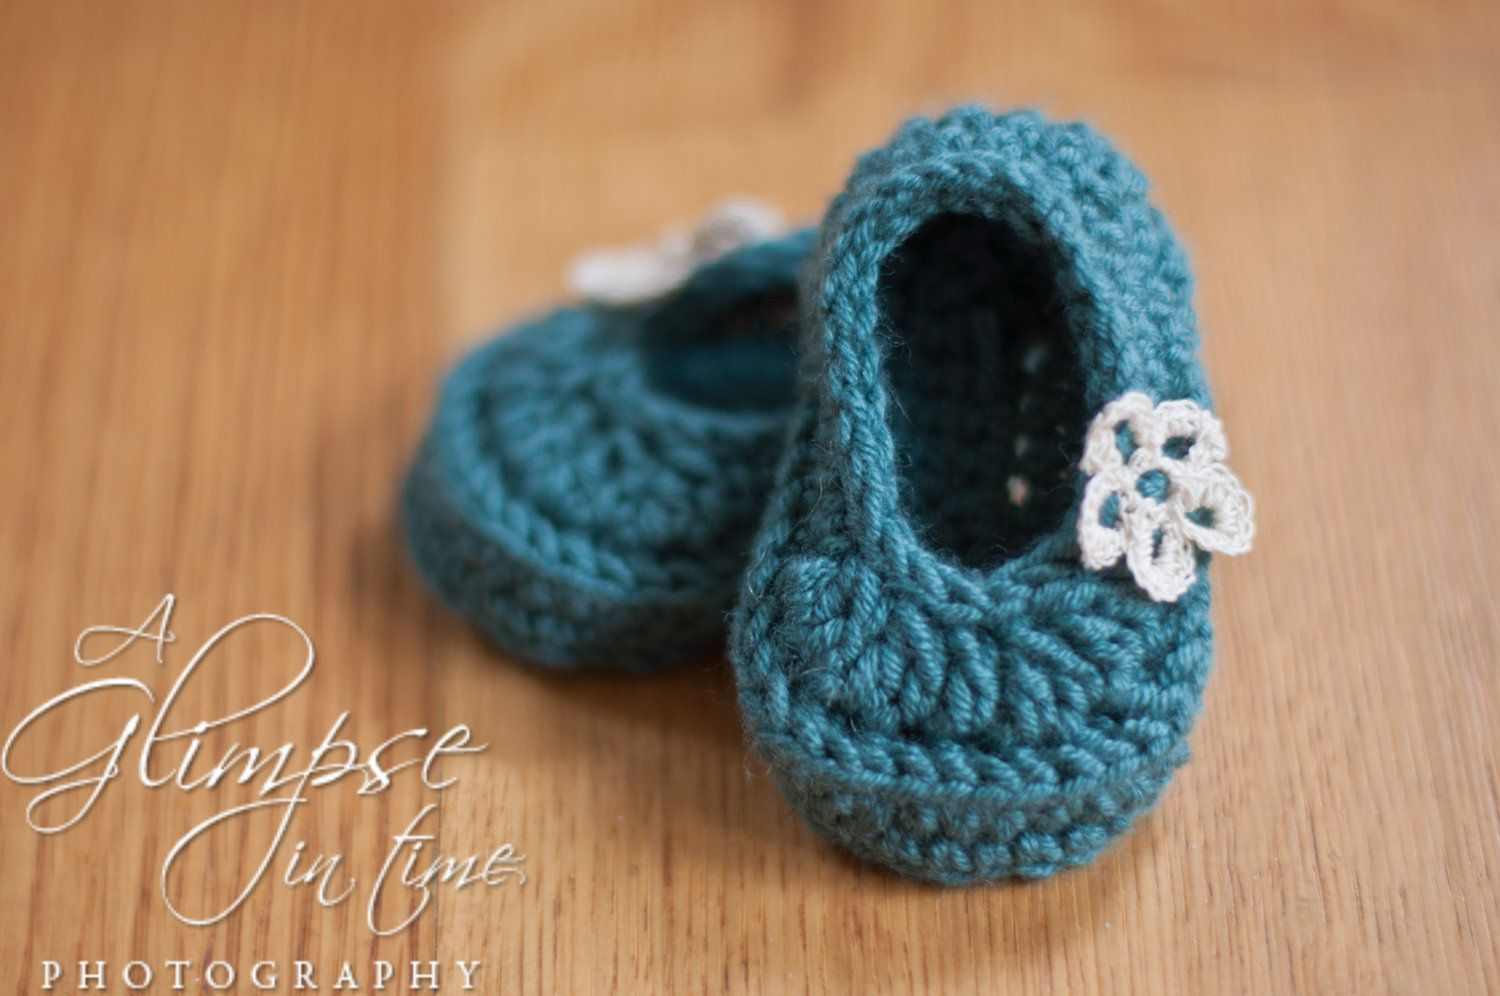 ea61c403a86f Hand Croched Baby Girl Booties Slippers with Dainty Crocheted Flower  Detail.  14.95